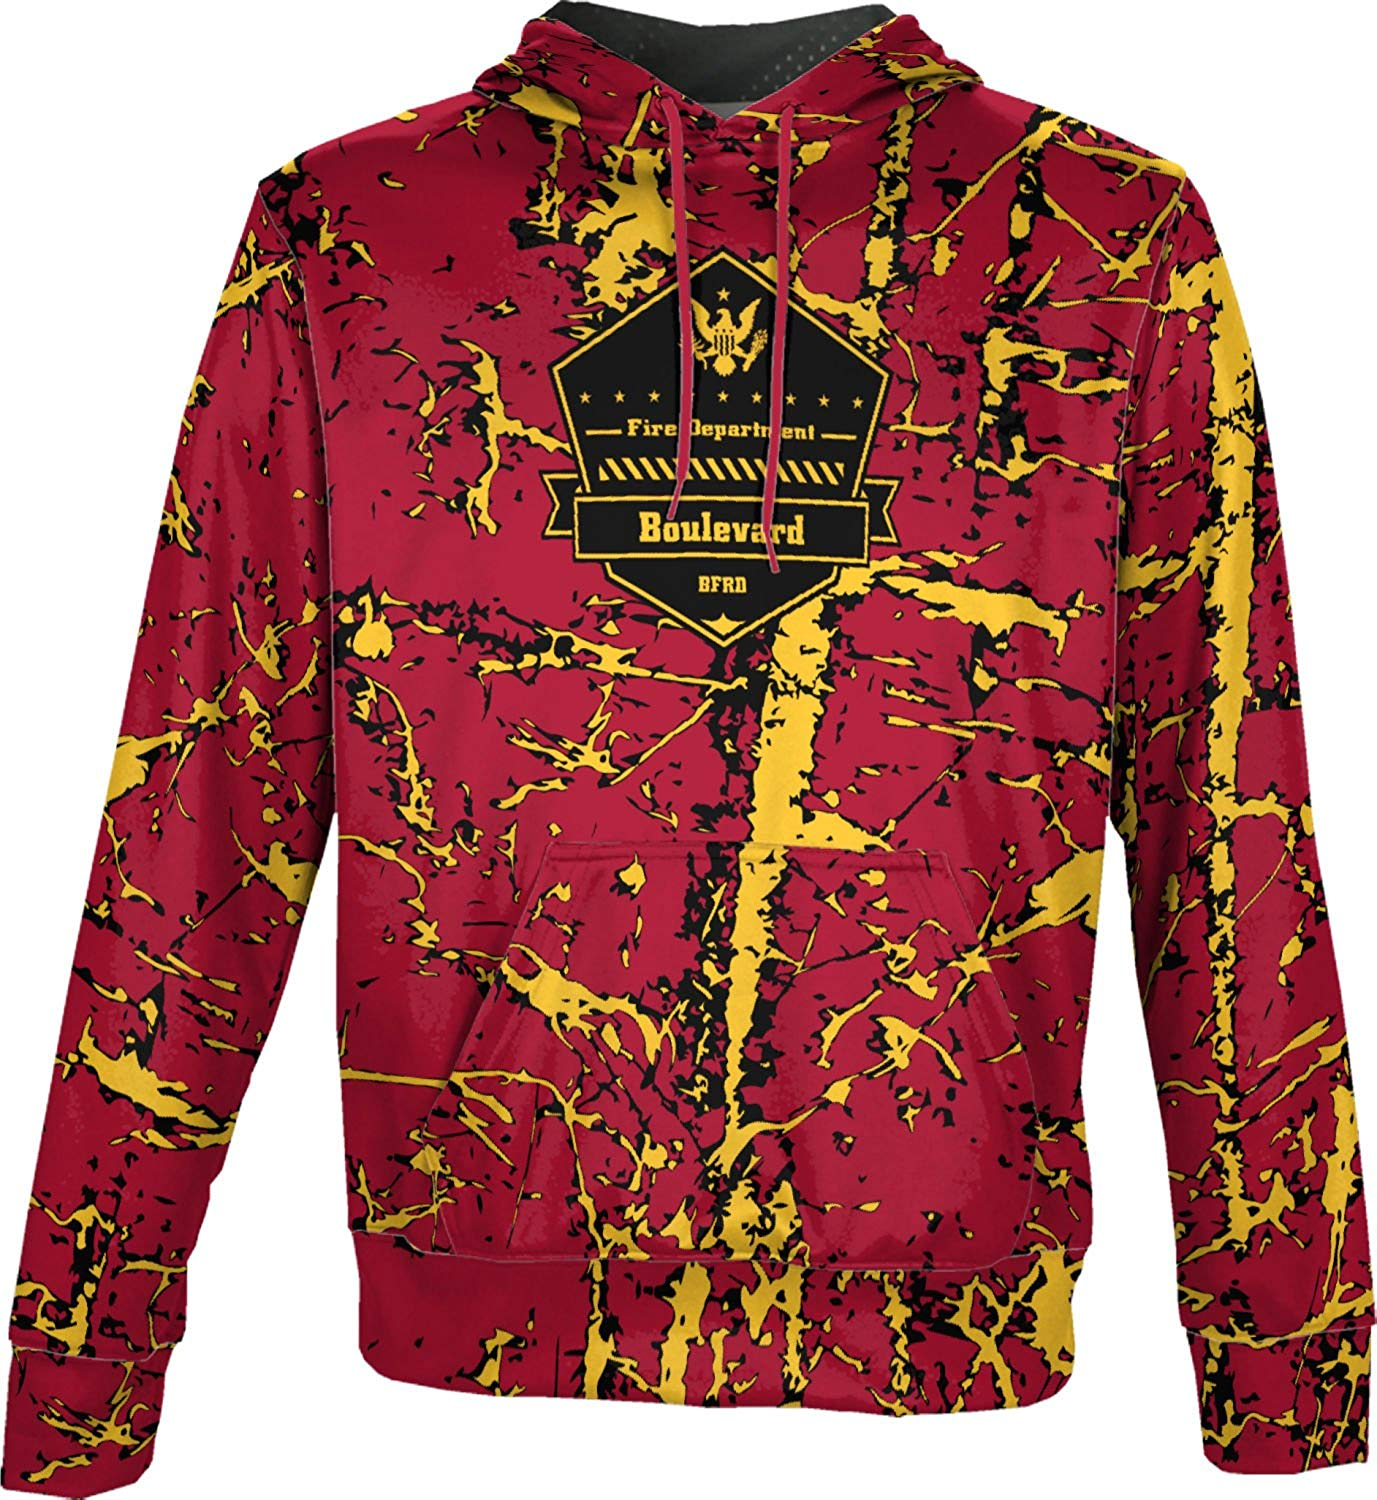 ProSphere Boys' Boulevard Fire and Rescue Department Fire Department Distressed Hoodie Sweatshirt